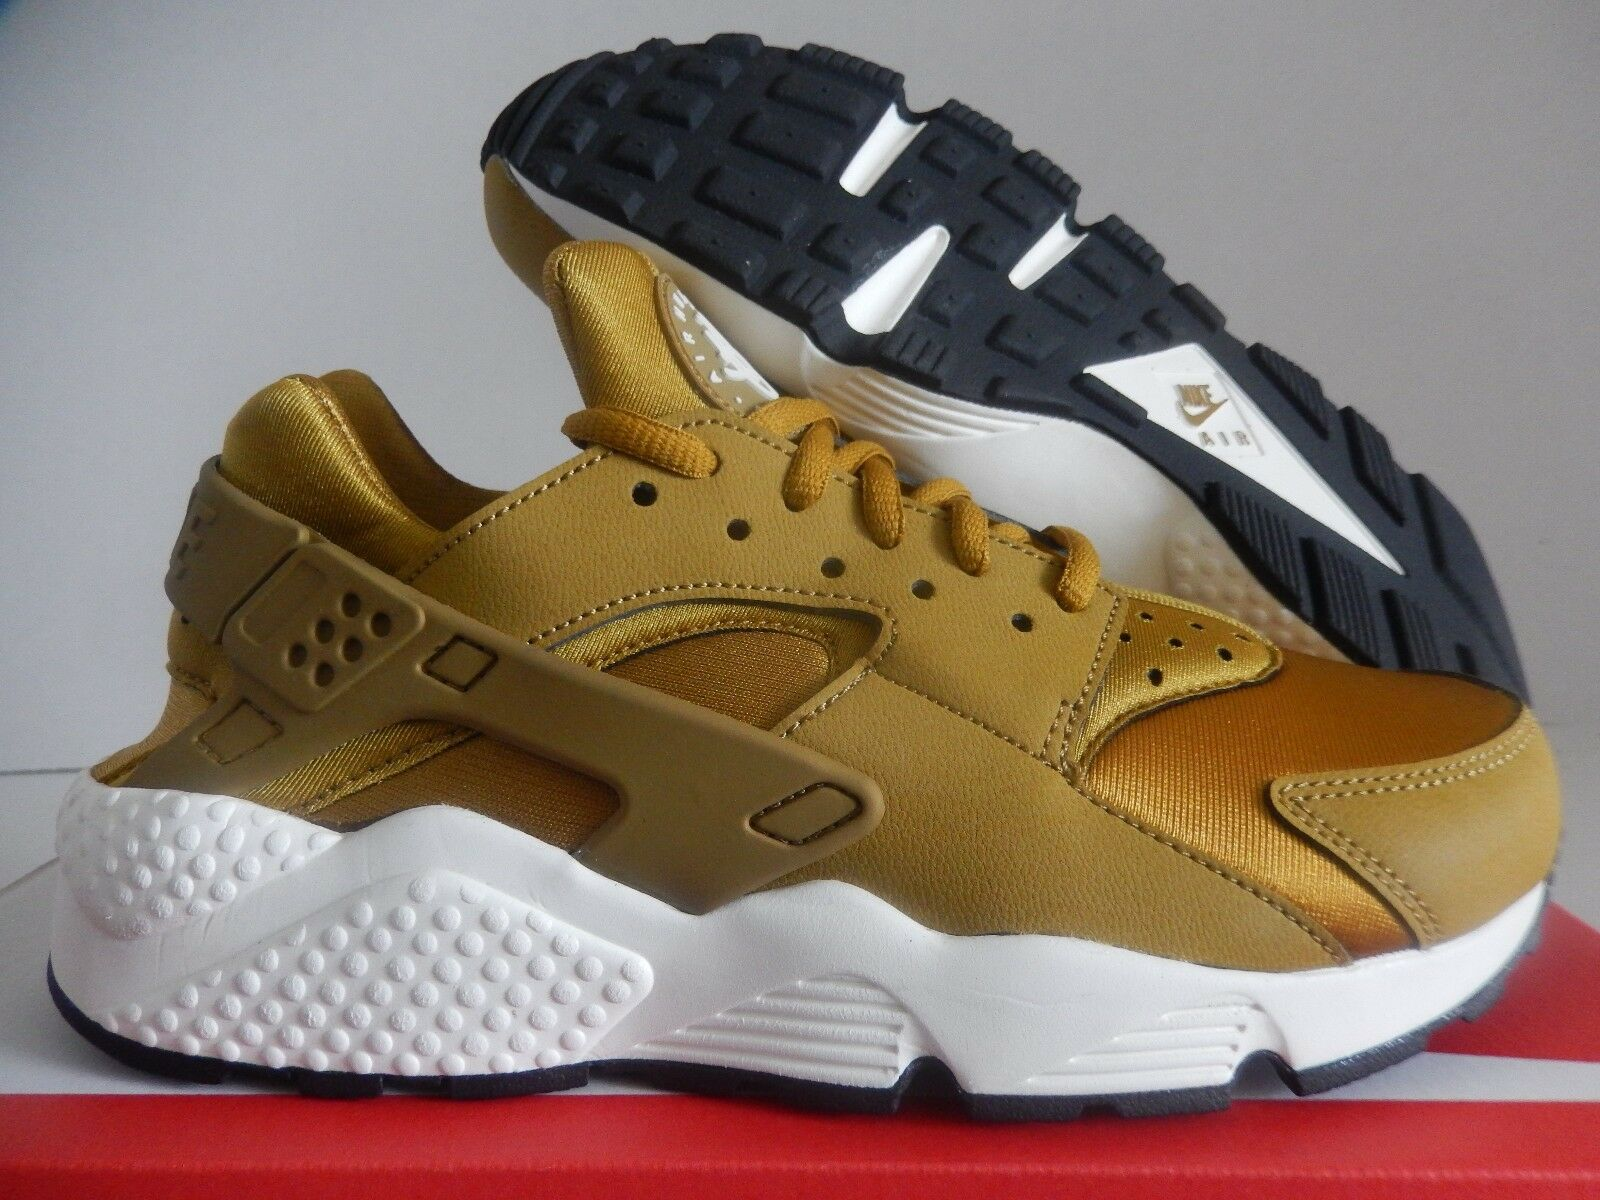 WMNS NIKE AIR HUARACHE RUN BRONZEINE-BRONZE-SAIL-BLACK SZ 6.5 [634835-700]